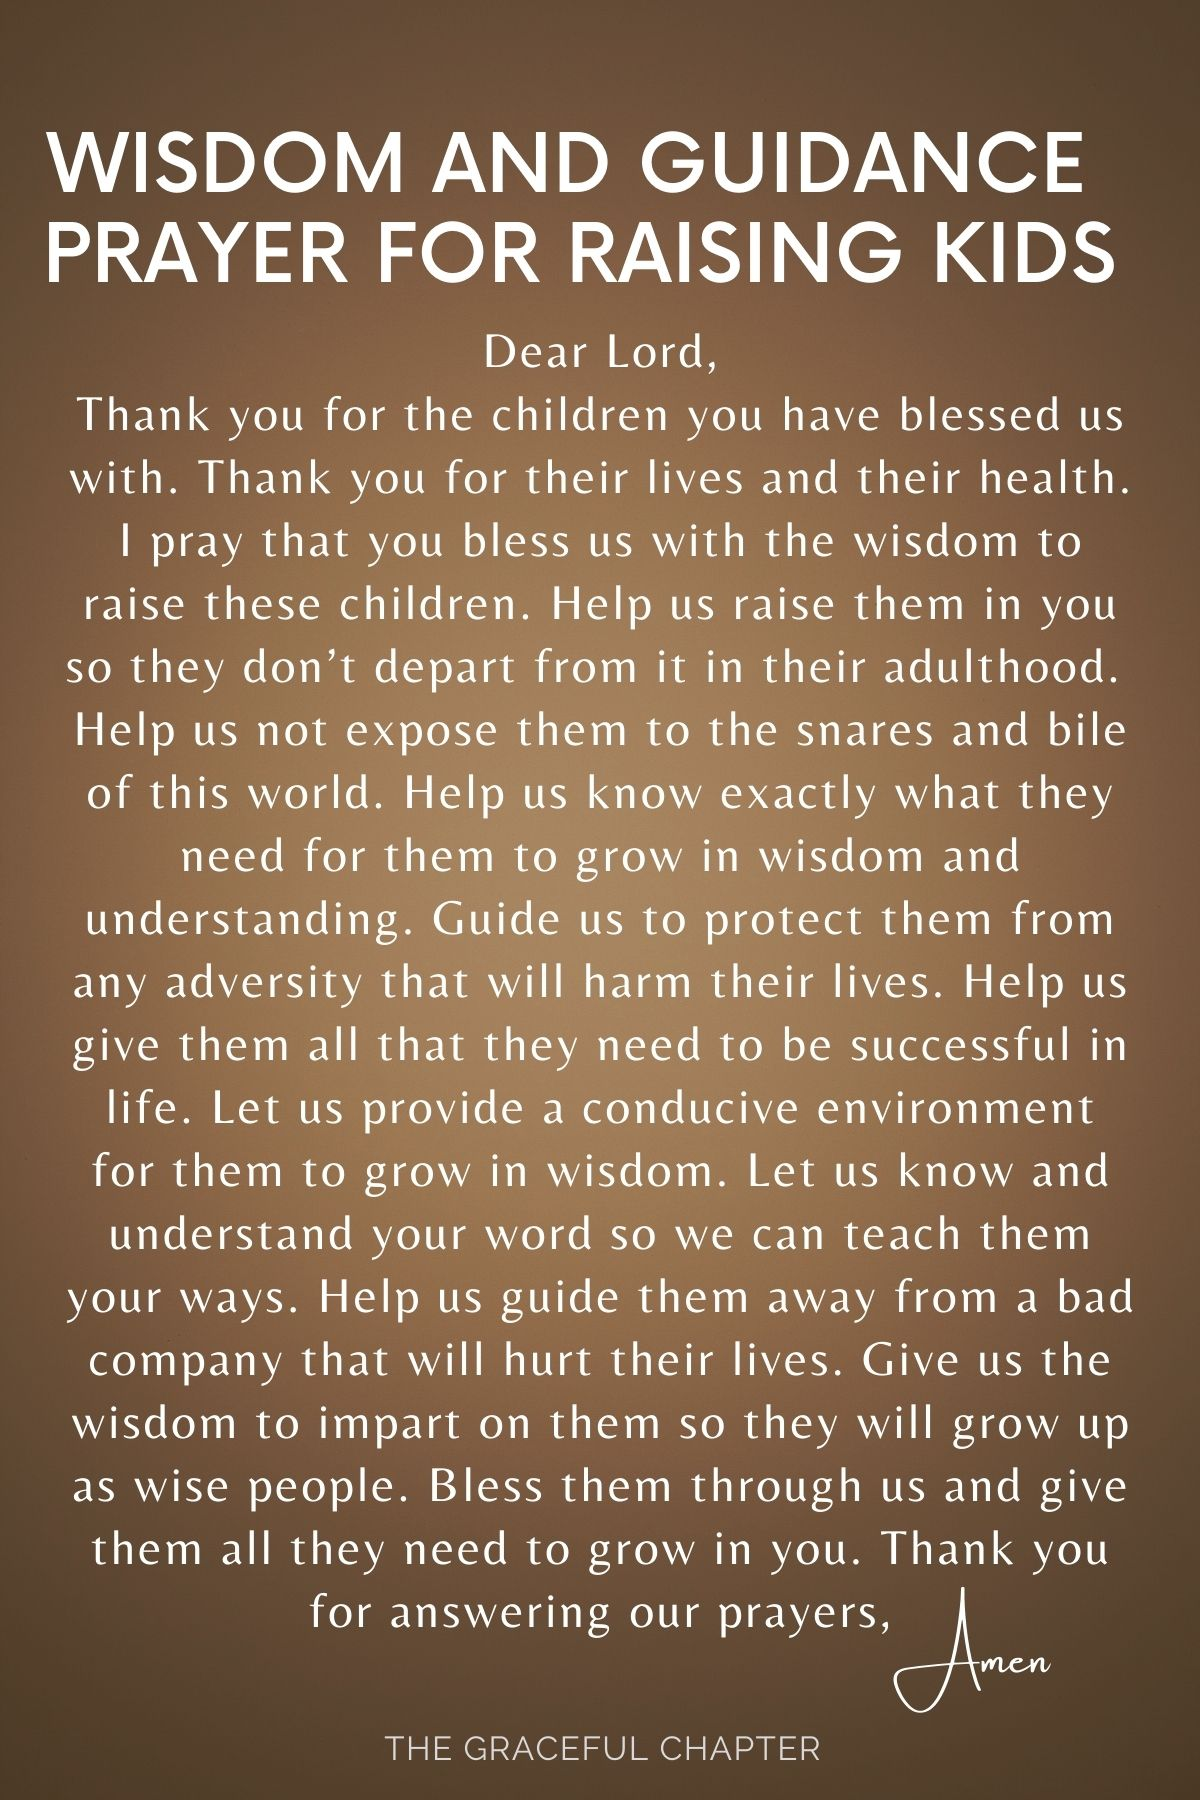 Wisdom and guidance for raising kids